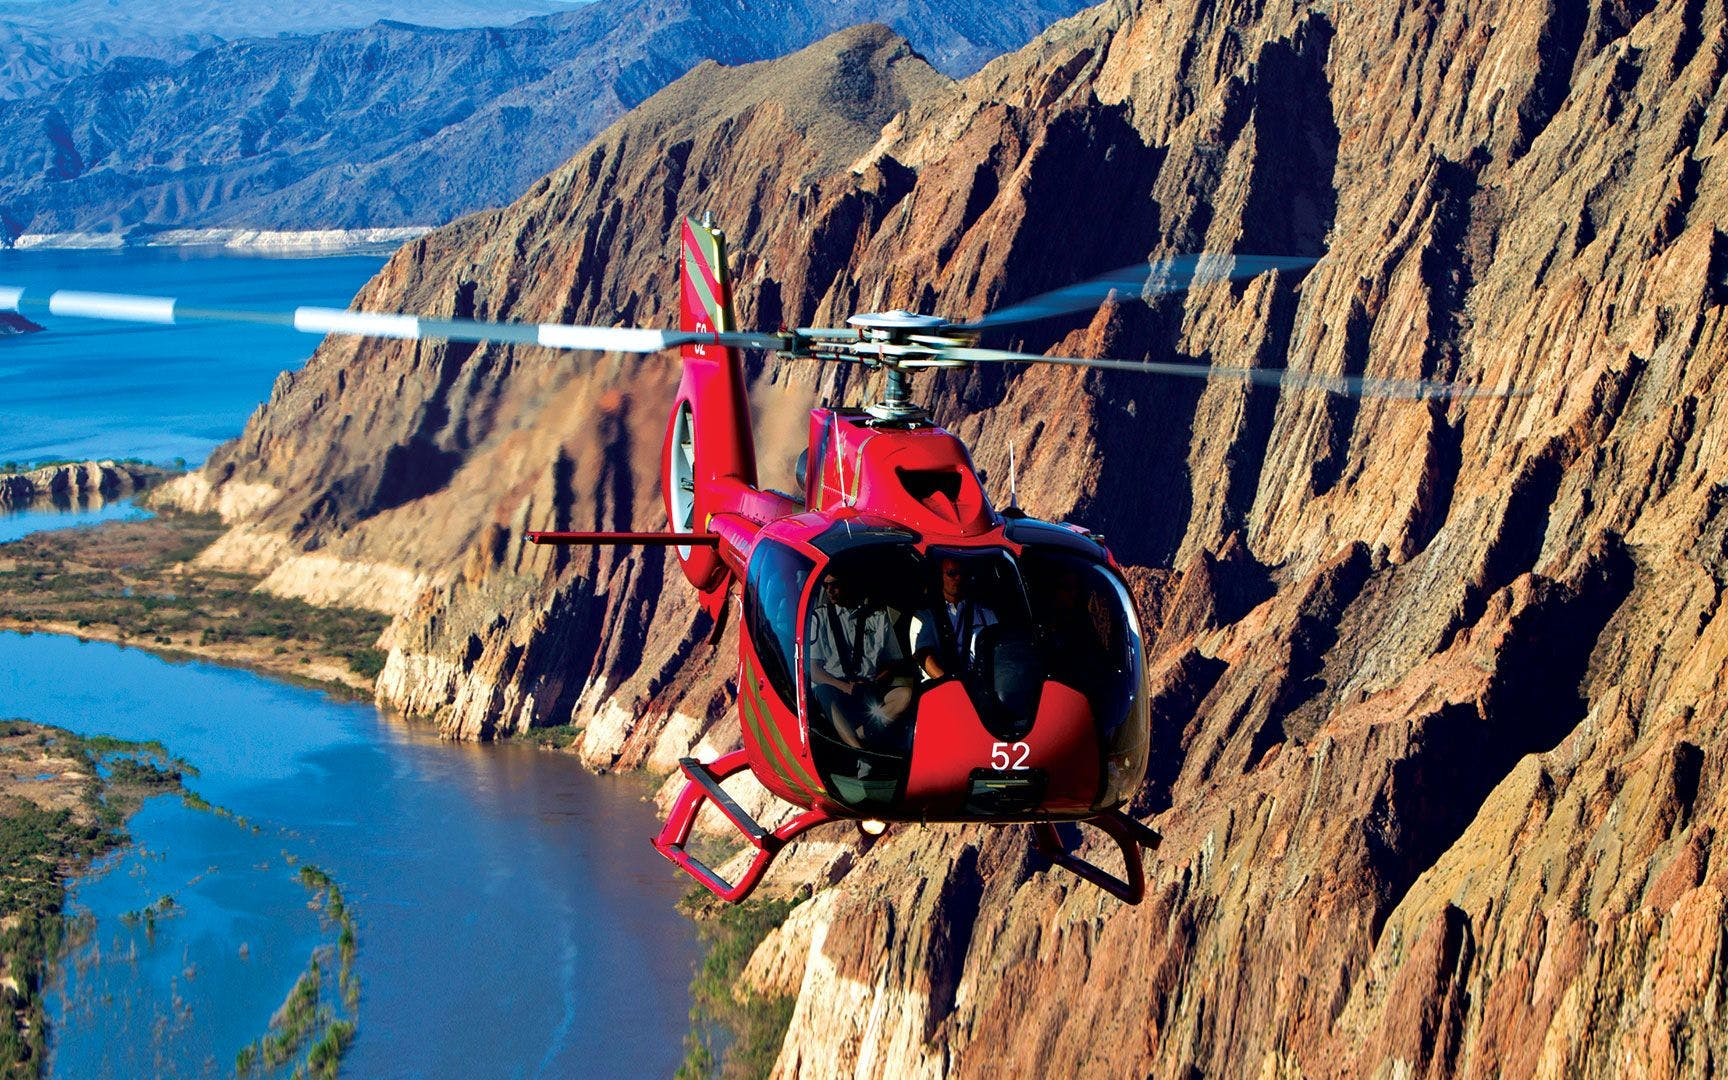 Vegas to GC West Rim Airplane Tour & Heli Ride with Colorado River Cruise